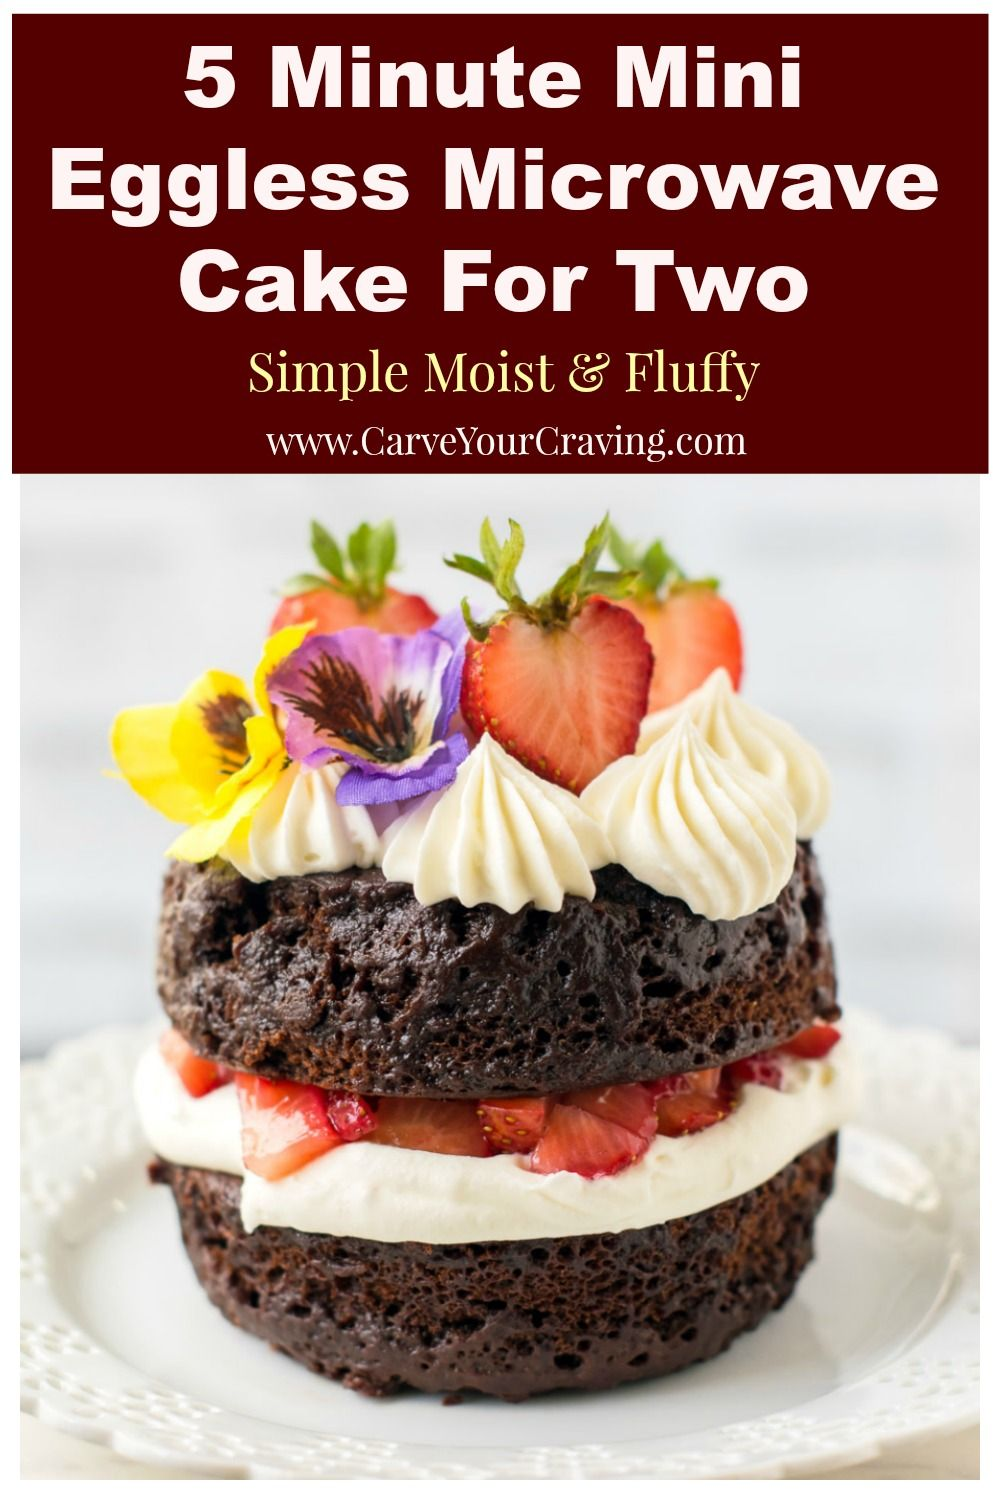 Make A Small Batch Moist And Fluffy Cake In A Microwave For 2